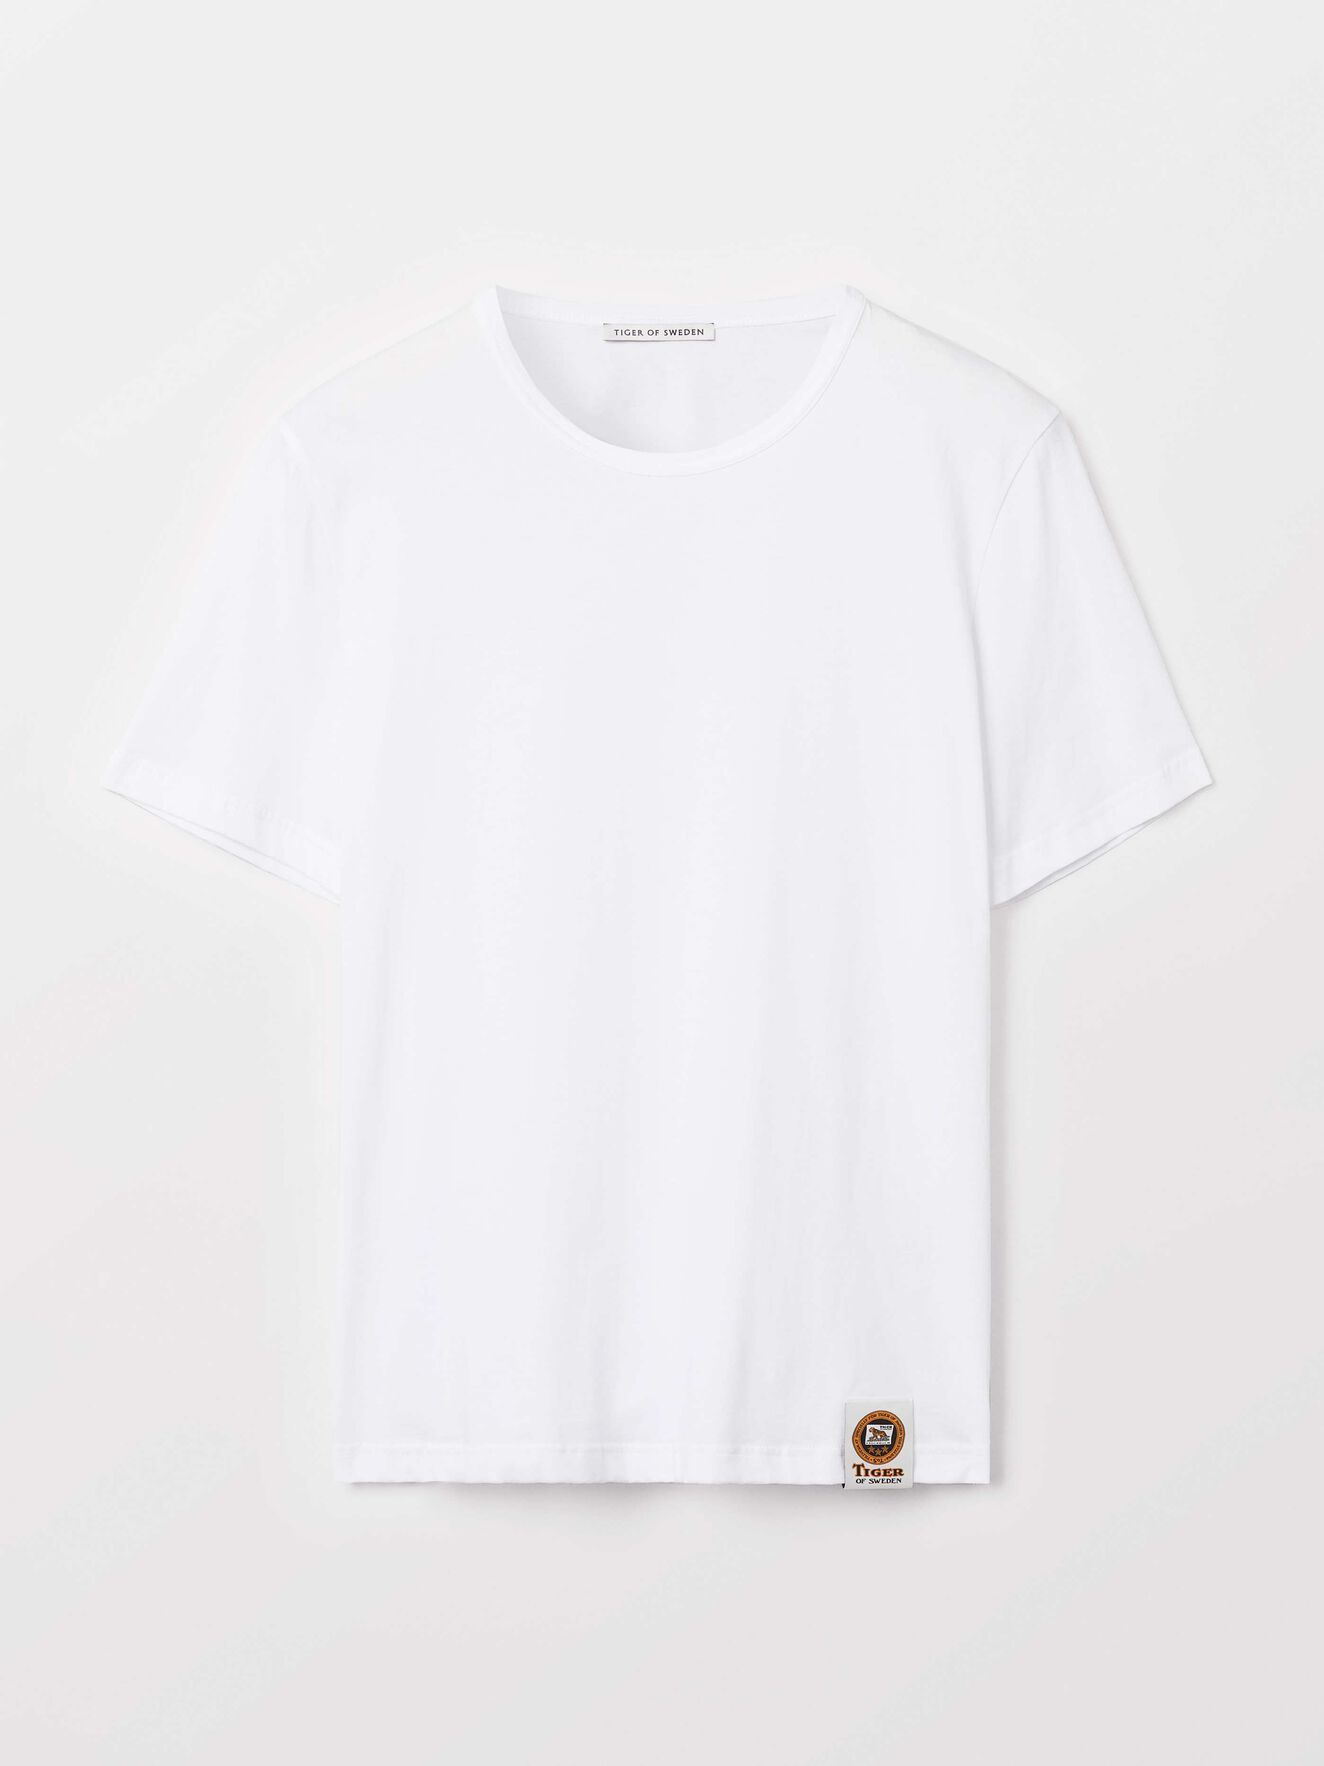 Darian T-Shirt in Pure white from Tiger of Sweden